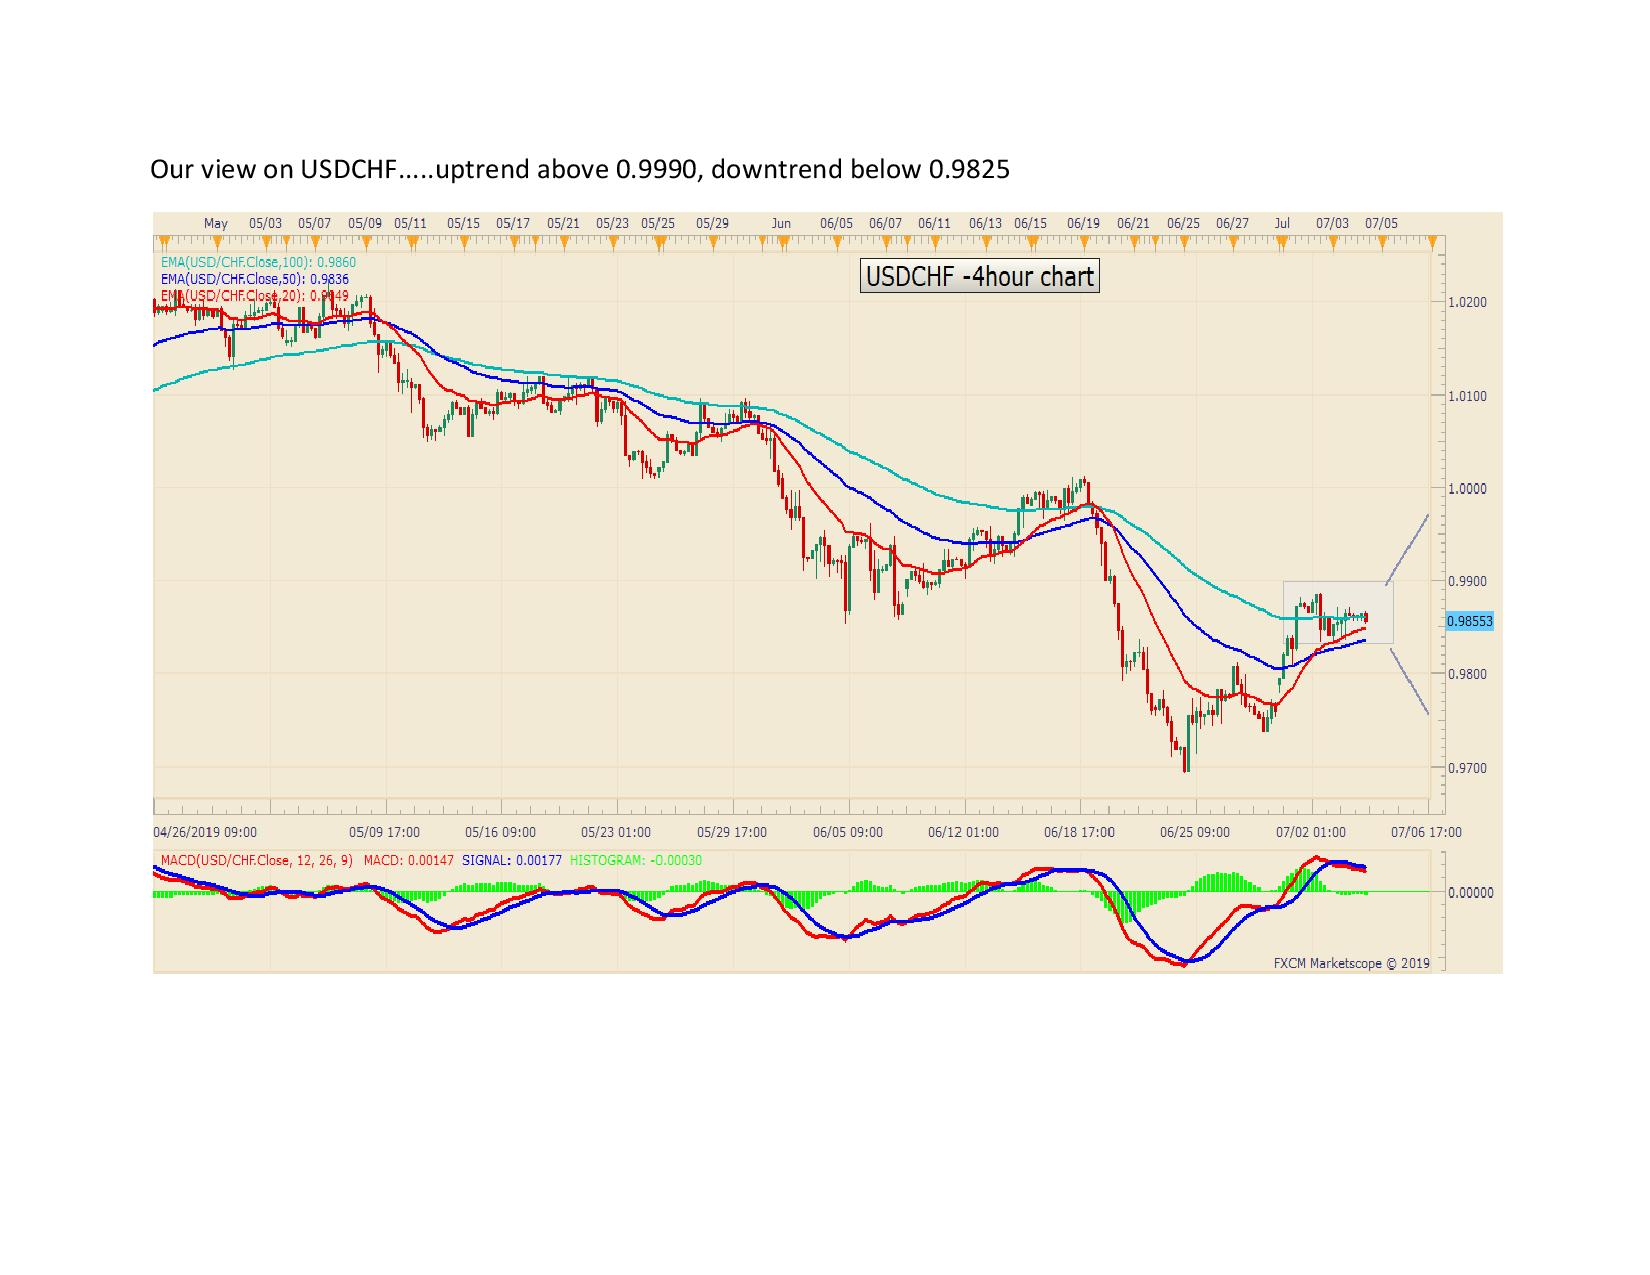 Our view on USDCHF page 001